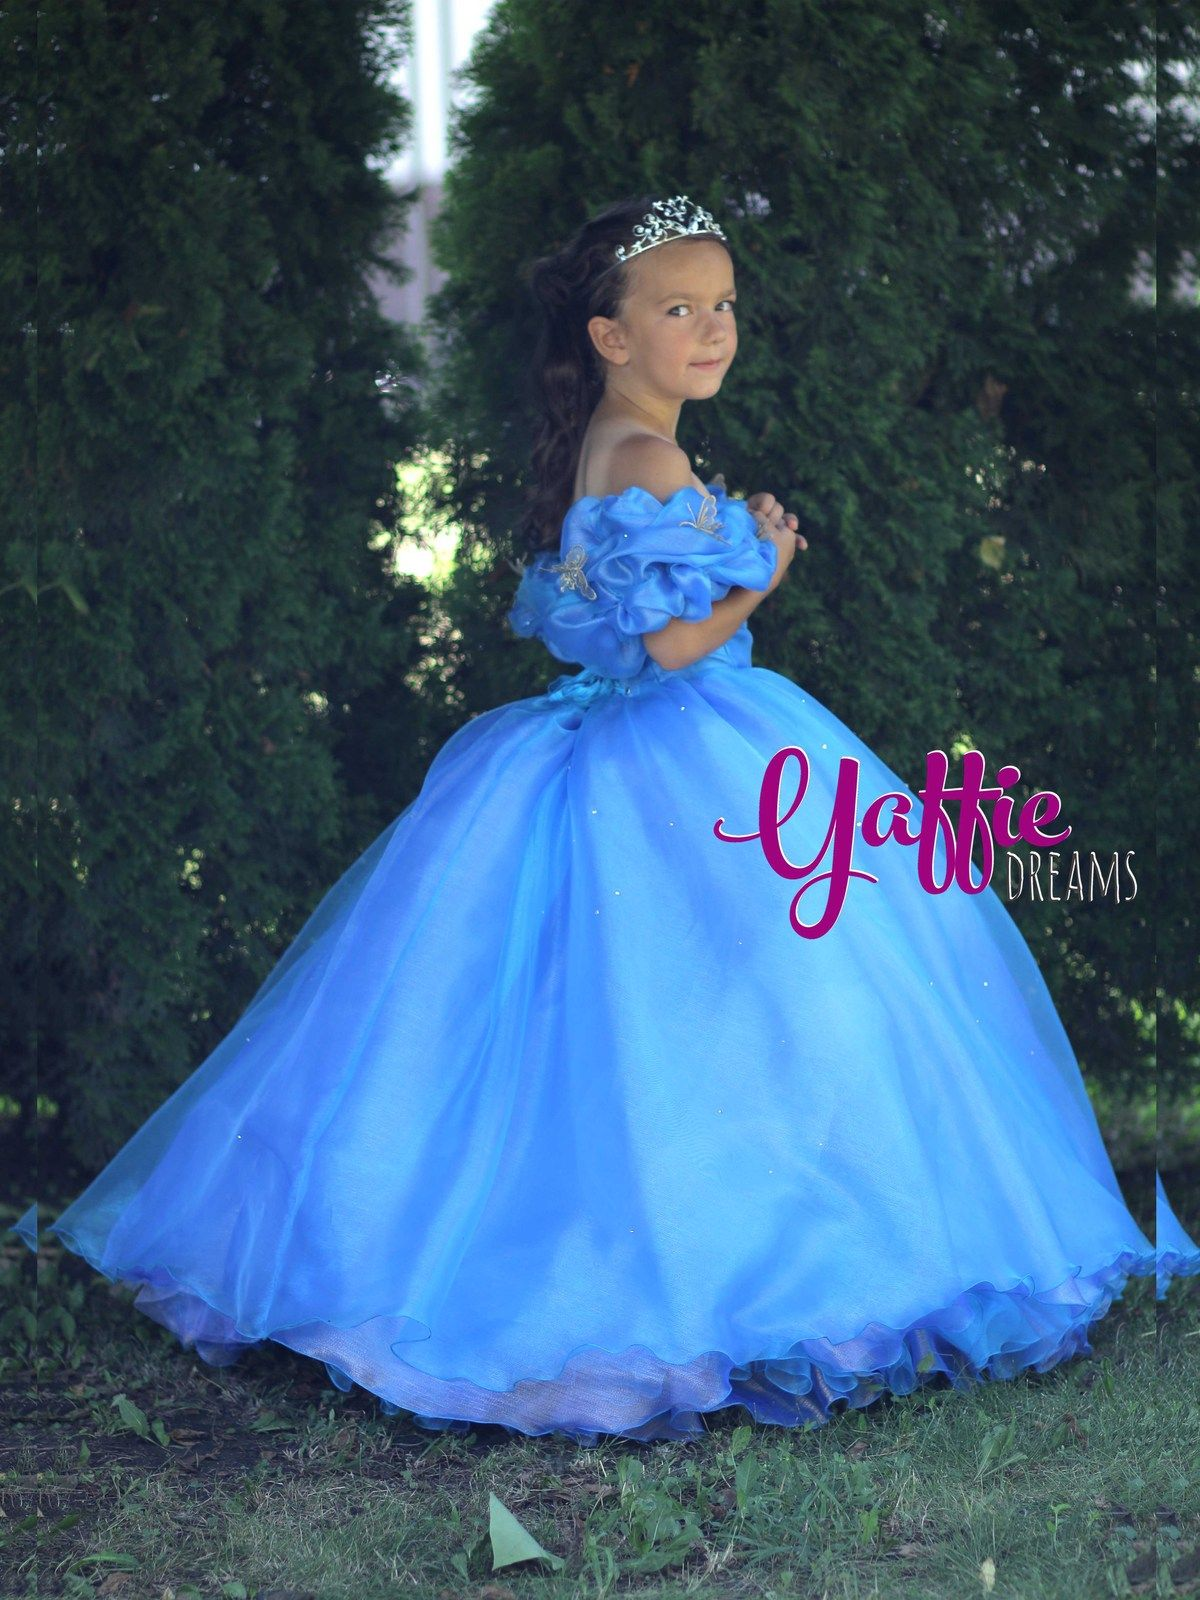 a9ff45156a11 Cinderella 2015 movie dress Disney princess ball gown Halloween costume  ideas for girl outfit birthday party gift blue butterfly design cosplay  child ...